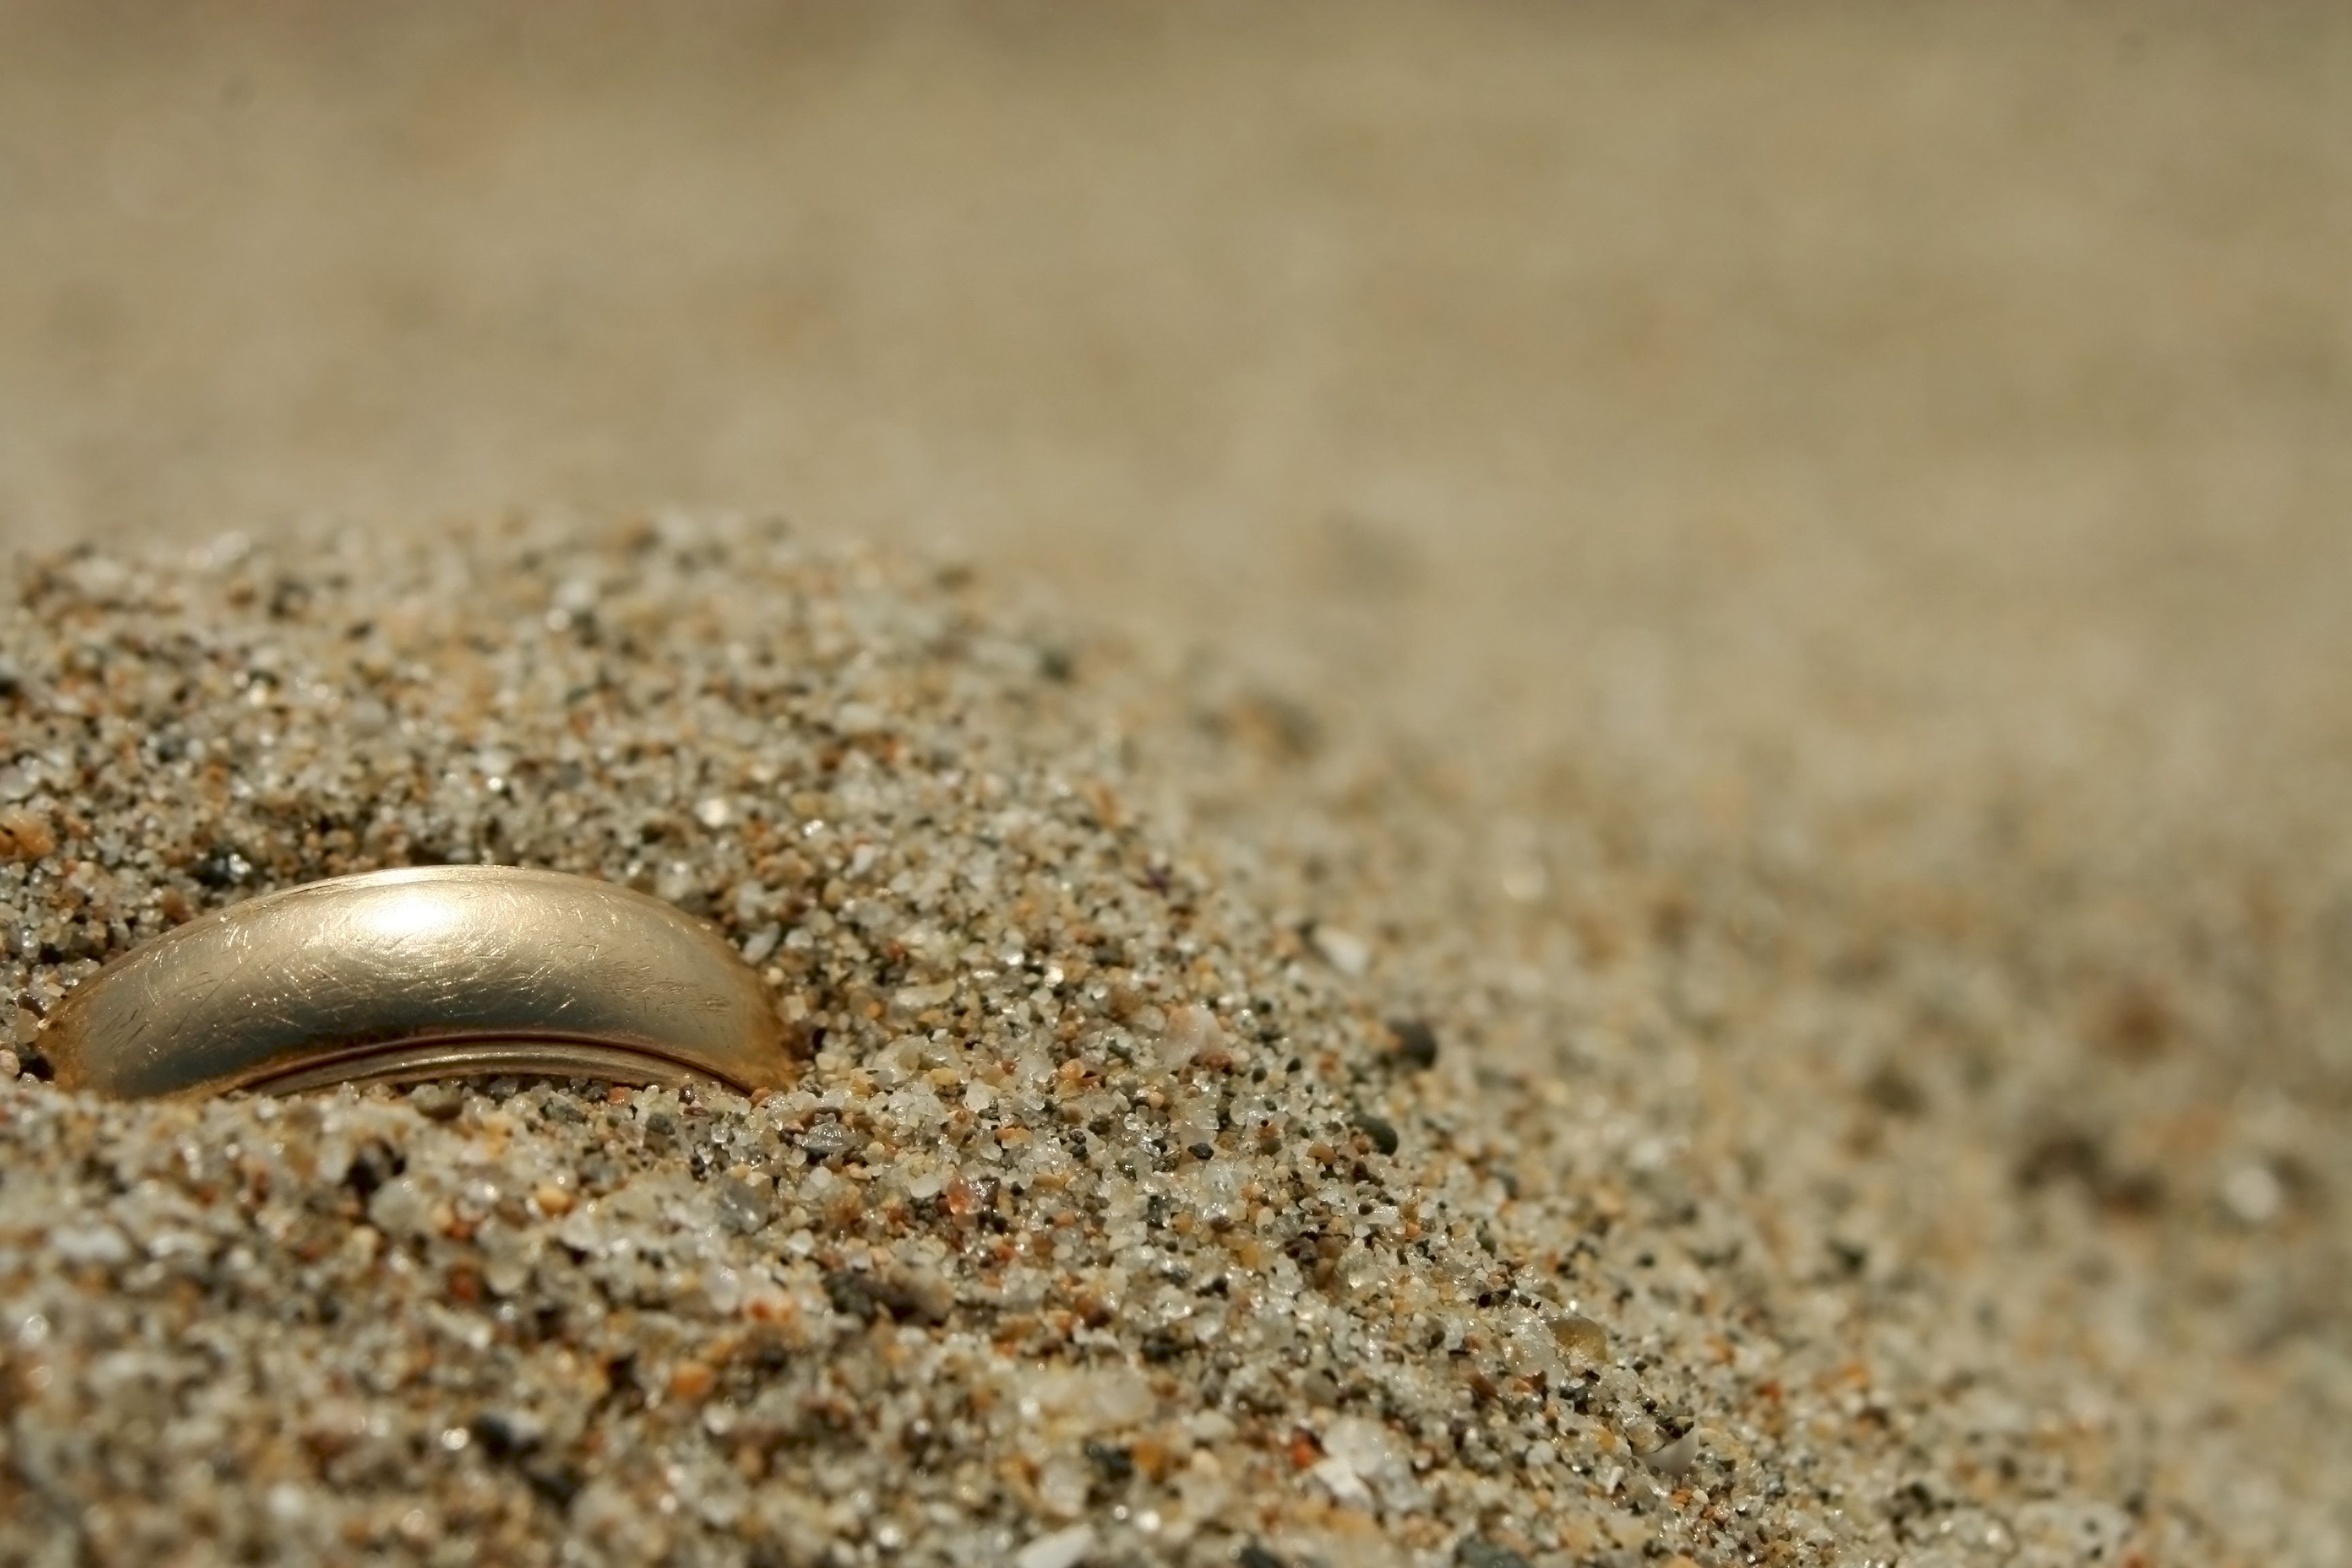 Lost Your Wedding Ring? These Strangers Will Find It For